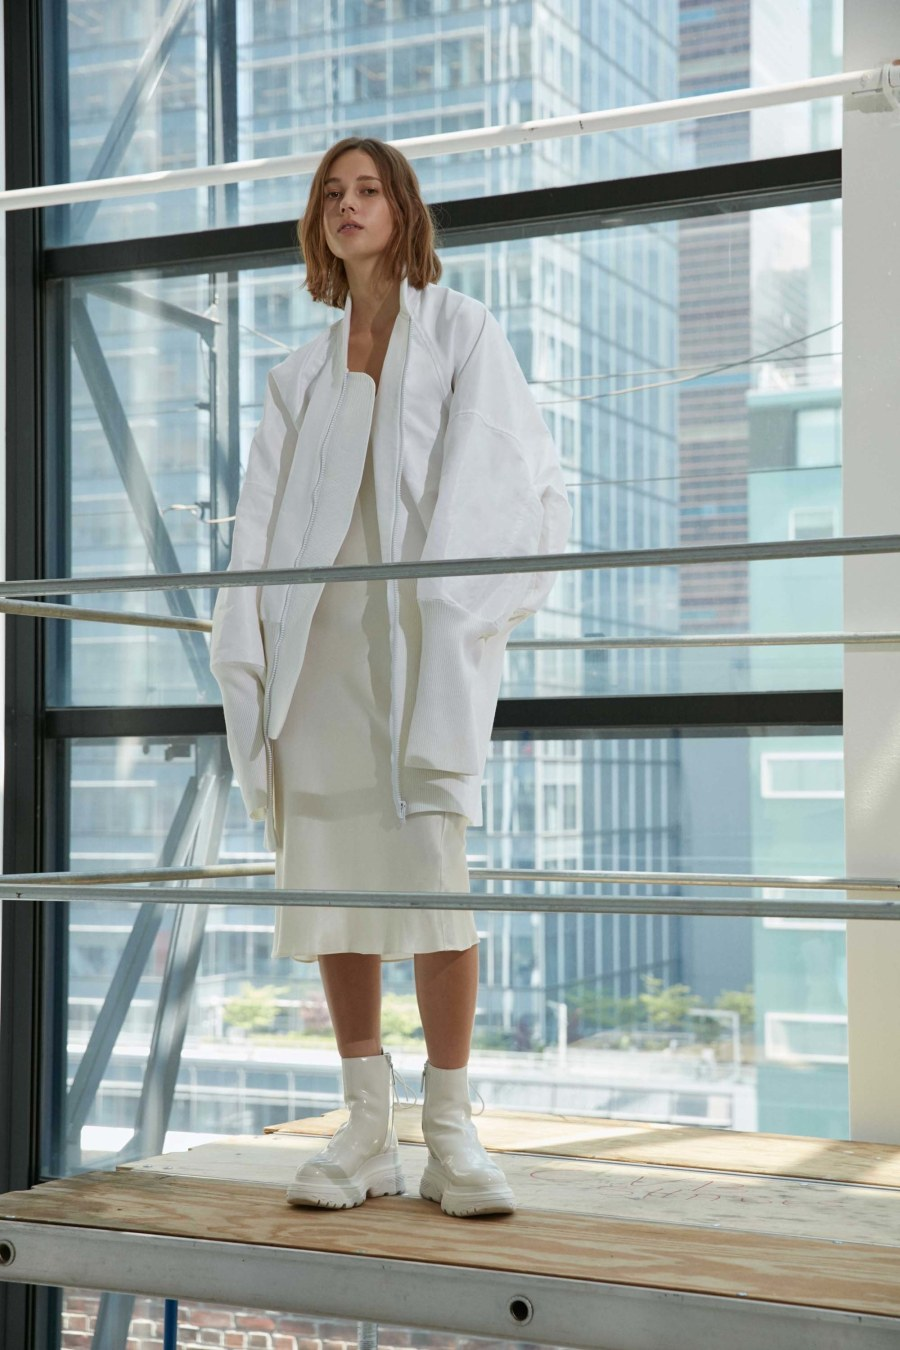 DKNY Resort 2017 FASHIONWONDERER (11)